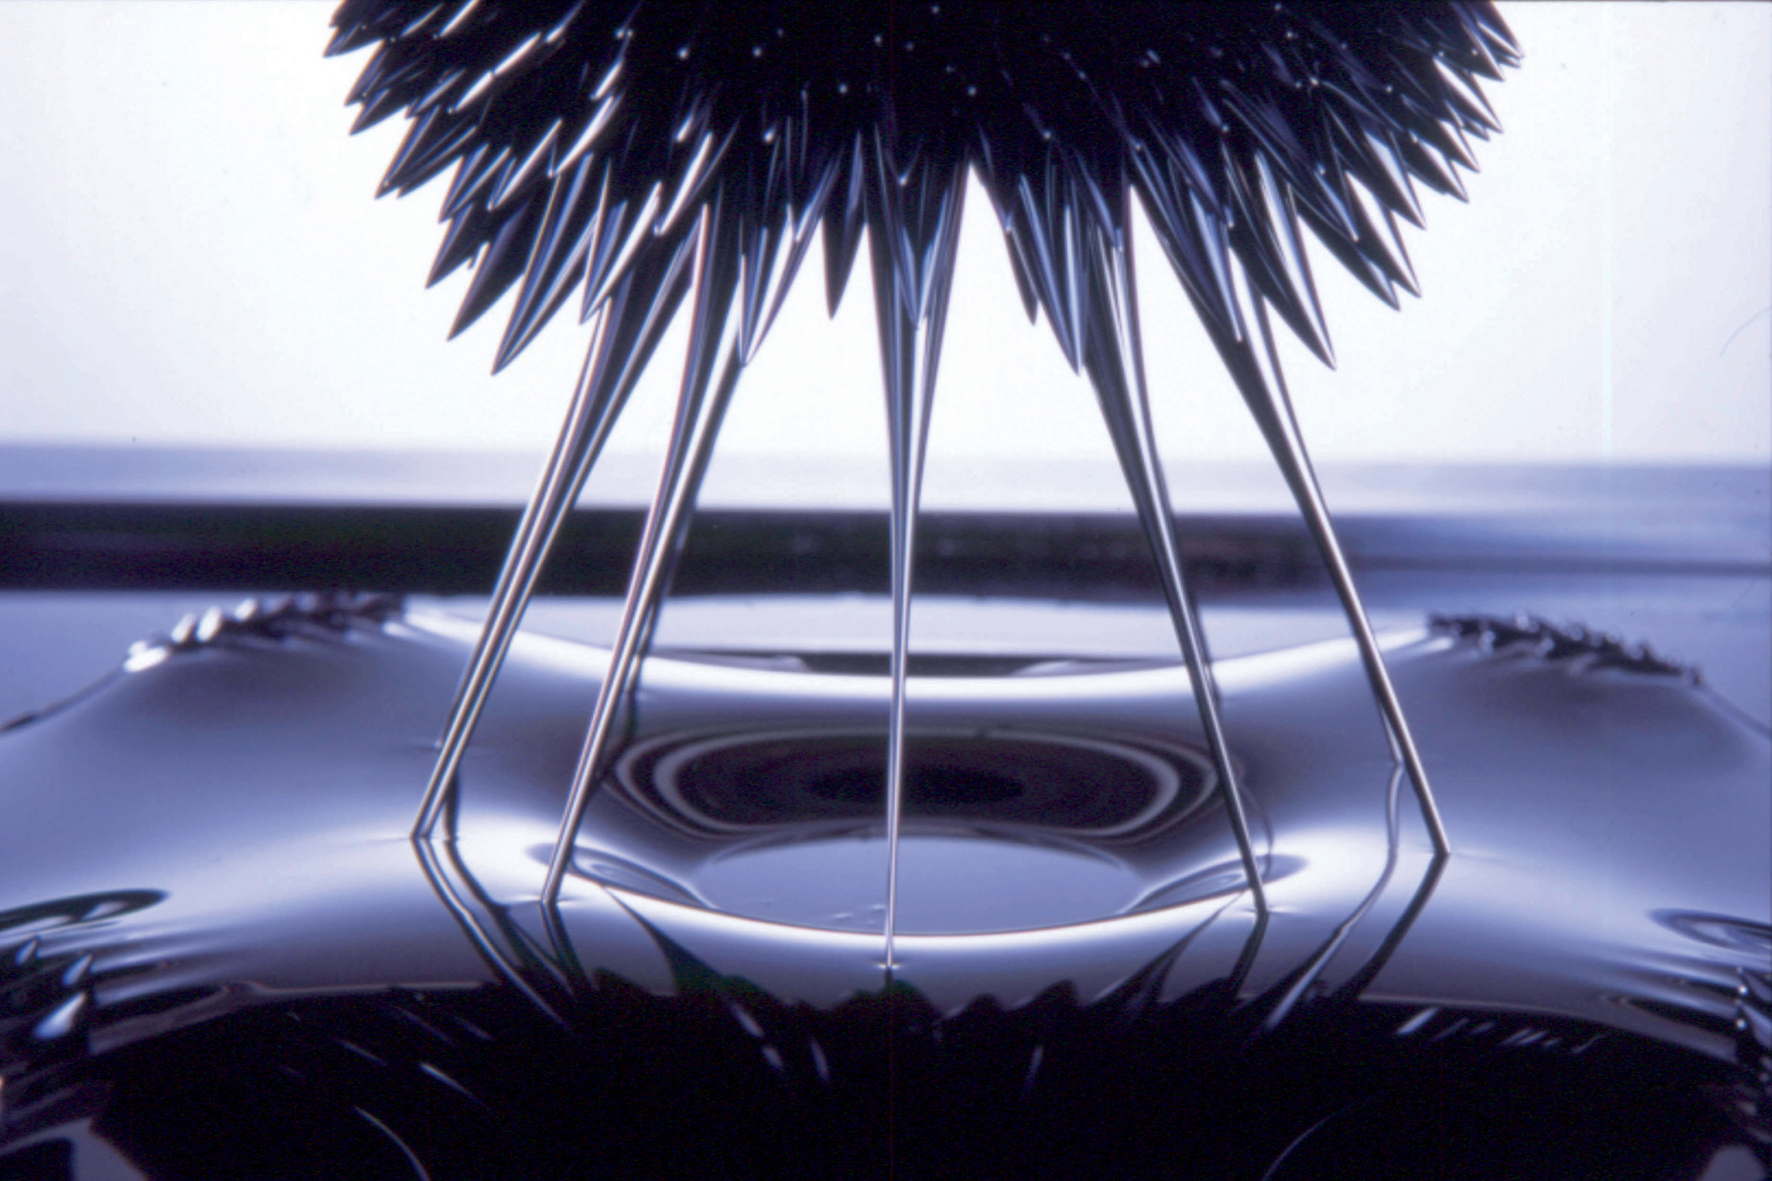 art-sculpture-science-ferrofluid-sachiko-kodama-5